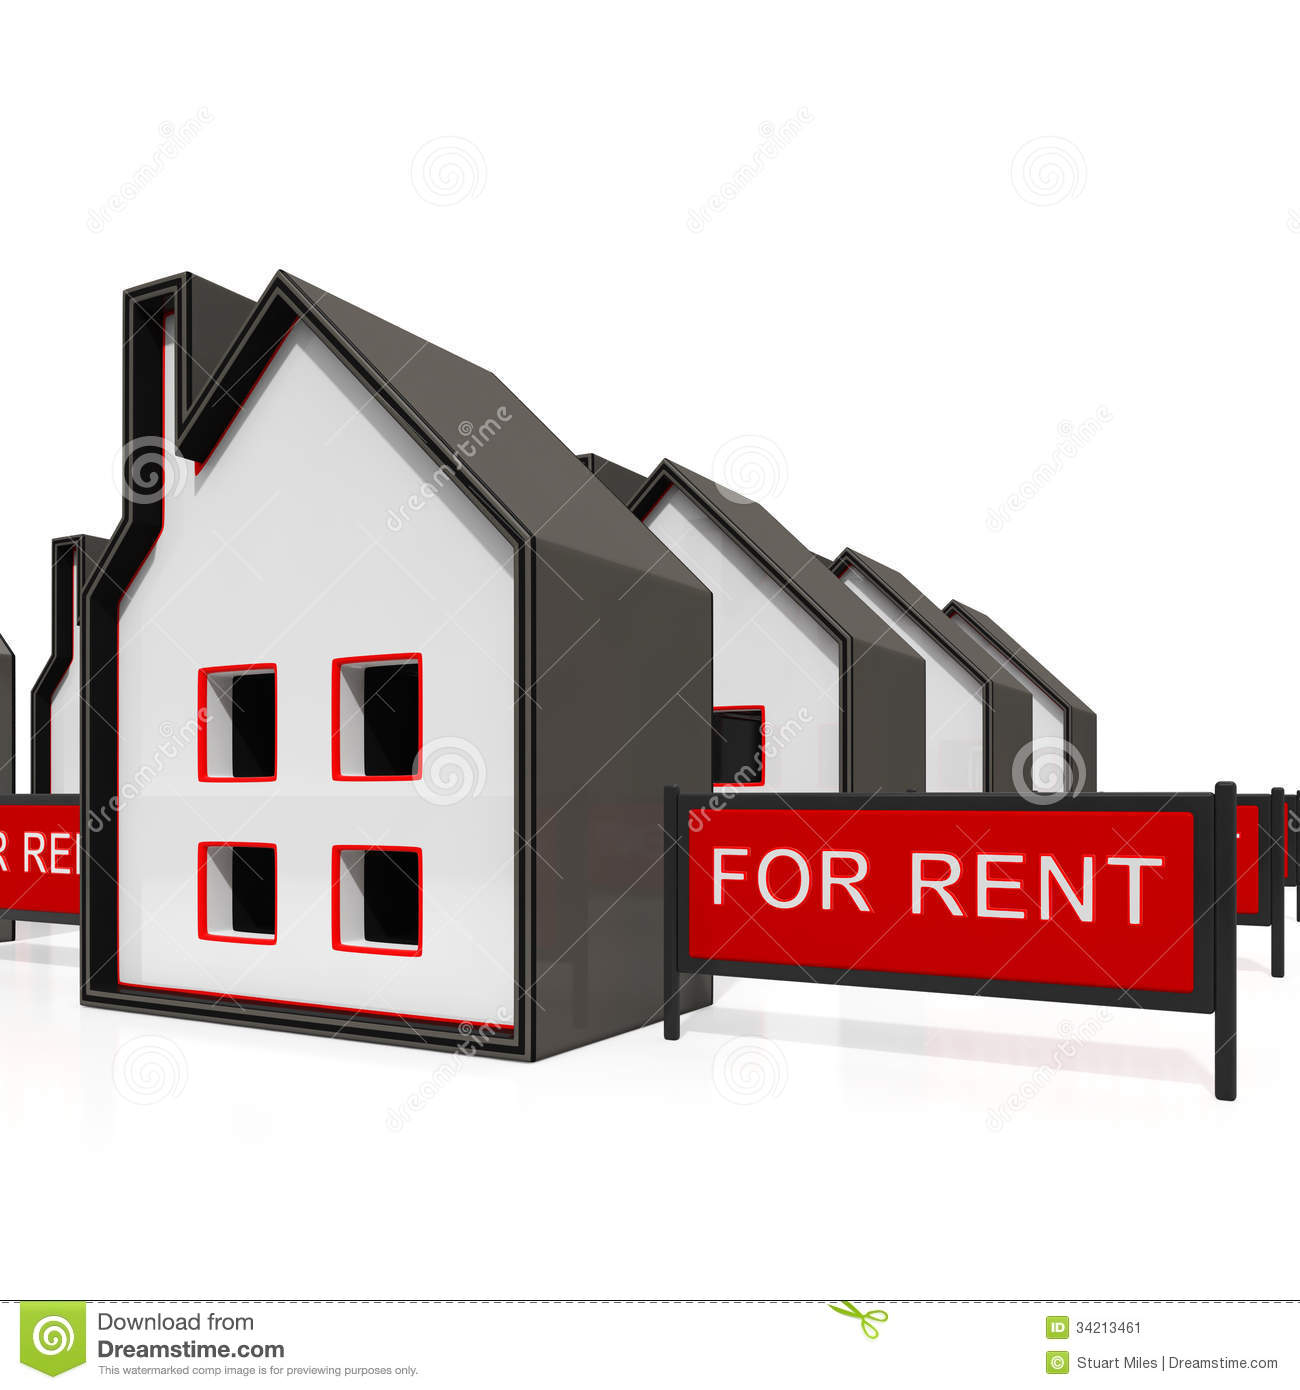 House For Rent Sign Shows Rental Stock Image   Image  34213461